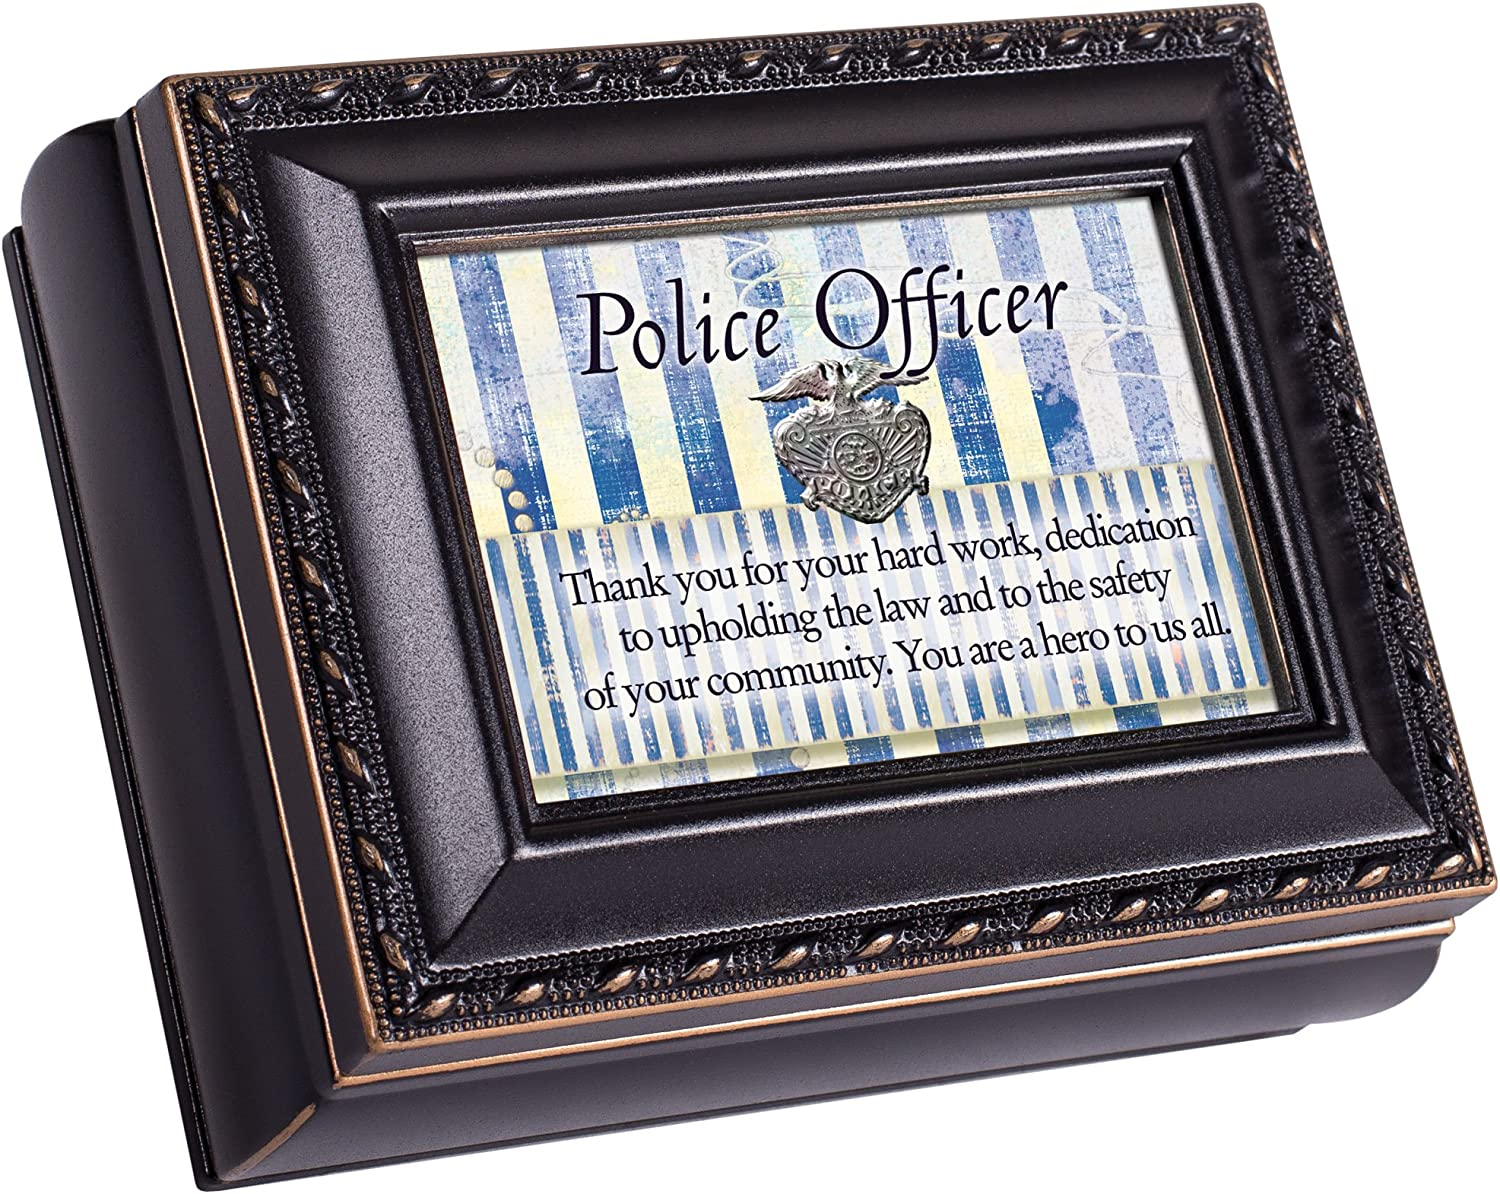 Cottage Garden Police Officer Black Rope Trim 4.5 x 3.5 Tiny Square Jewelry Keepsake Box